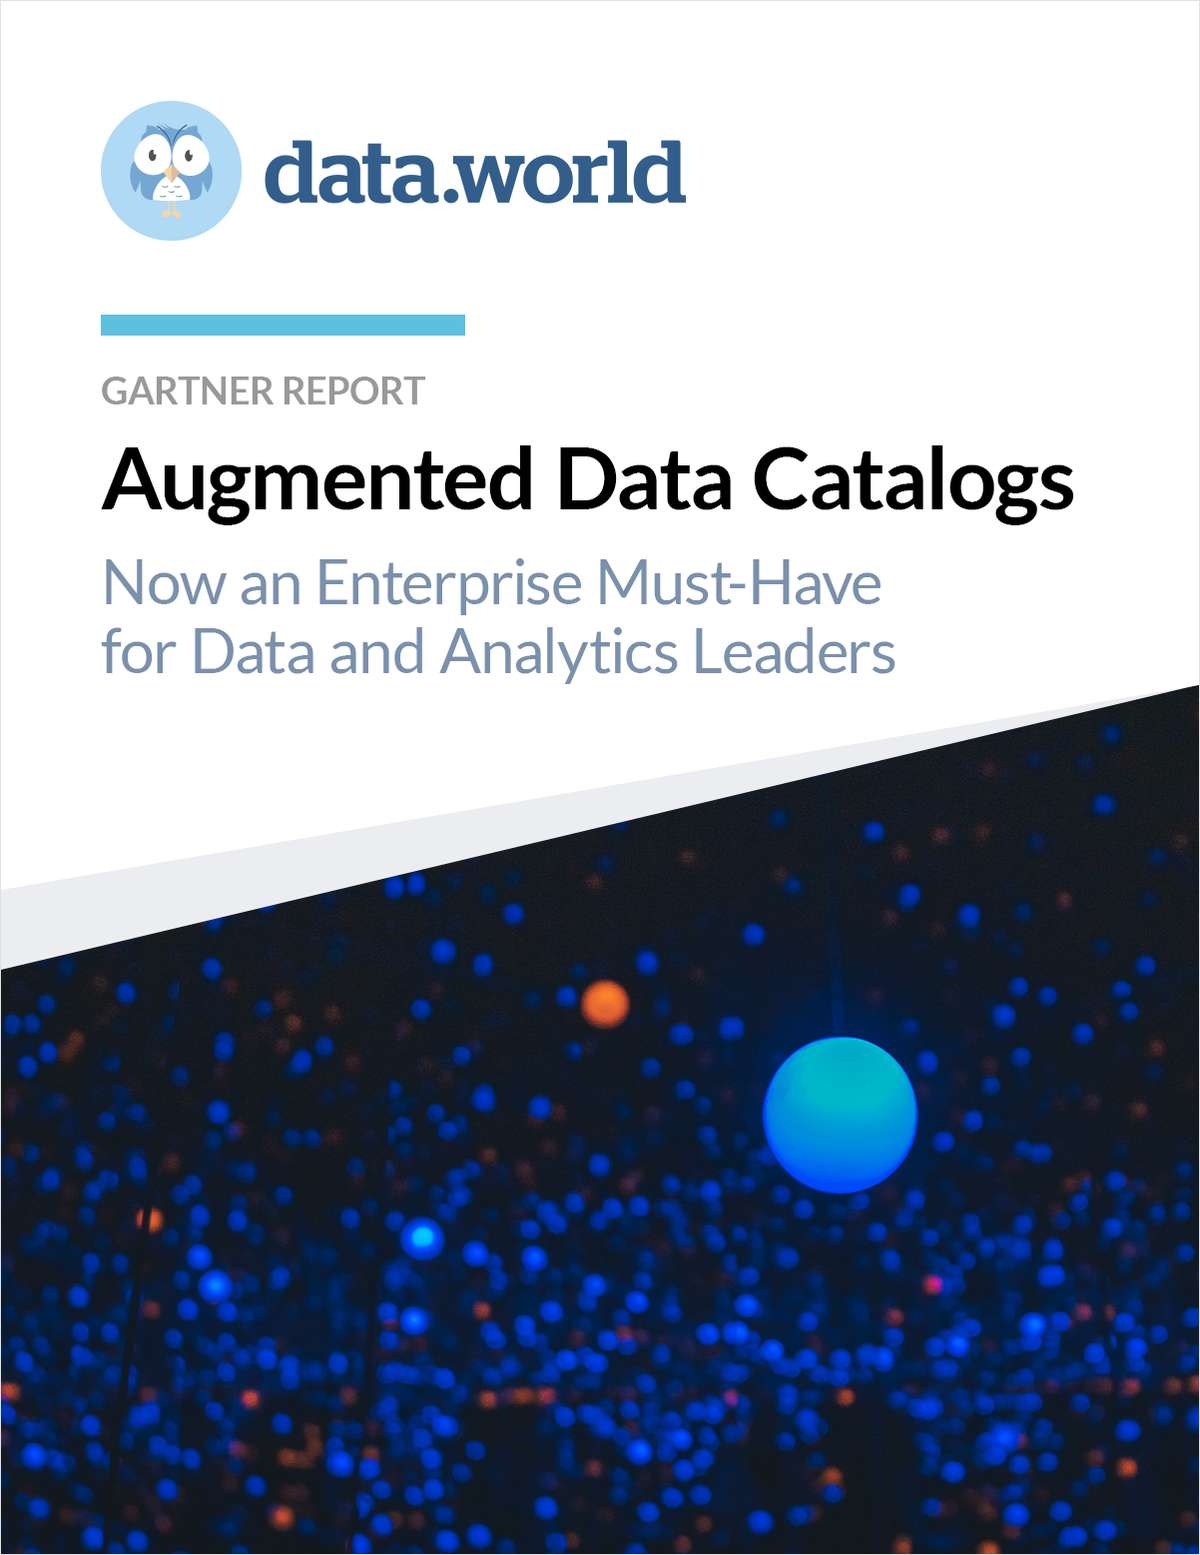 Gartner Report: Augmented Data Catalogs: Now an Enterprise Must-Have for Data and Analytics Leaders